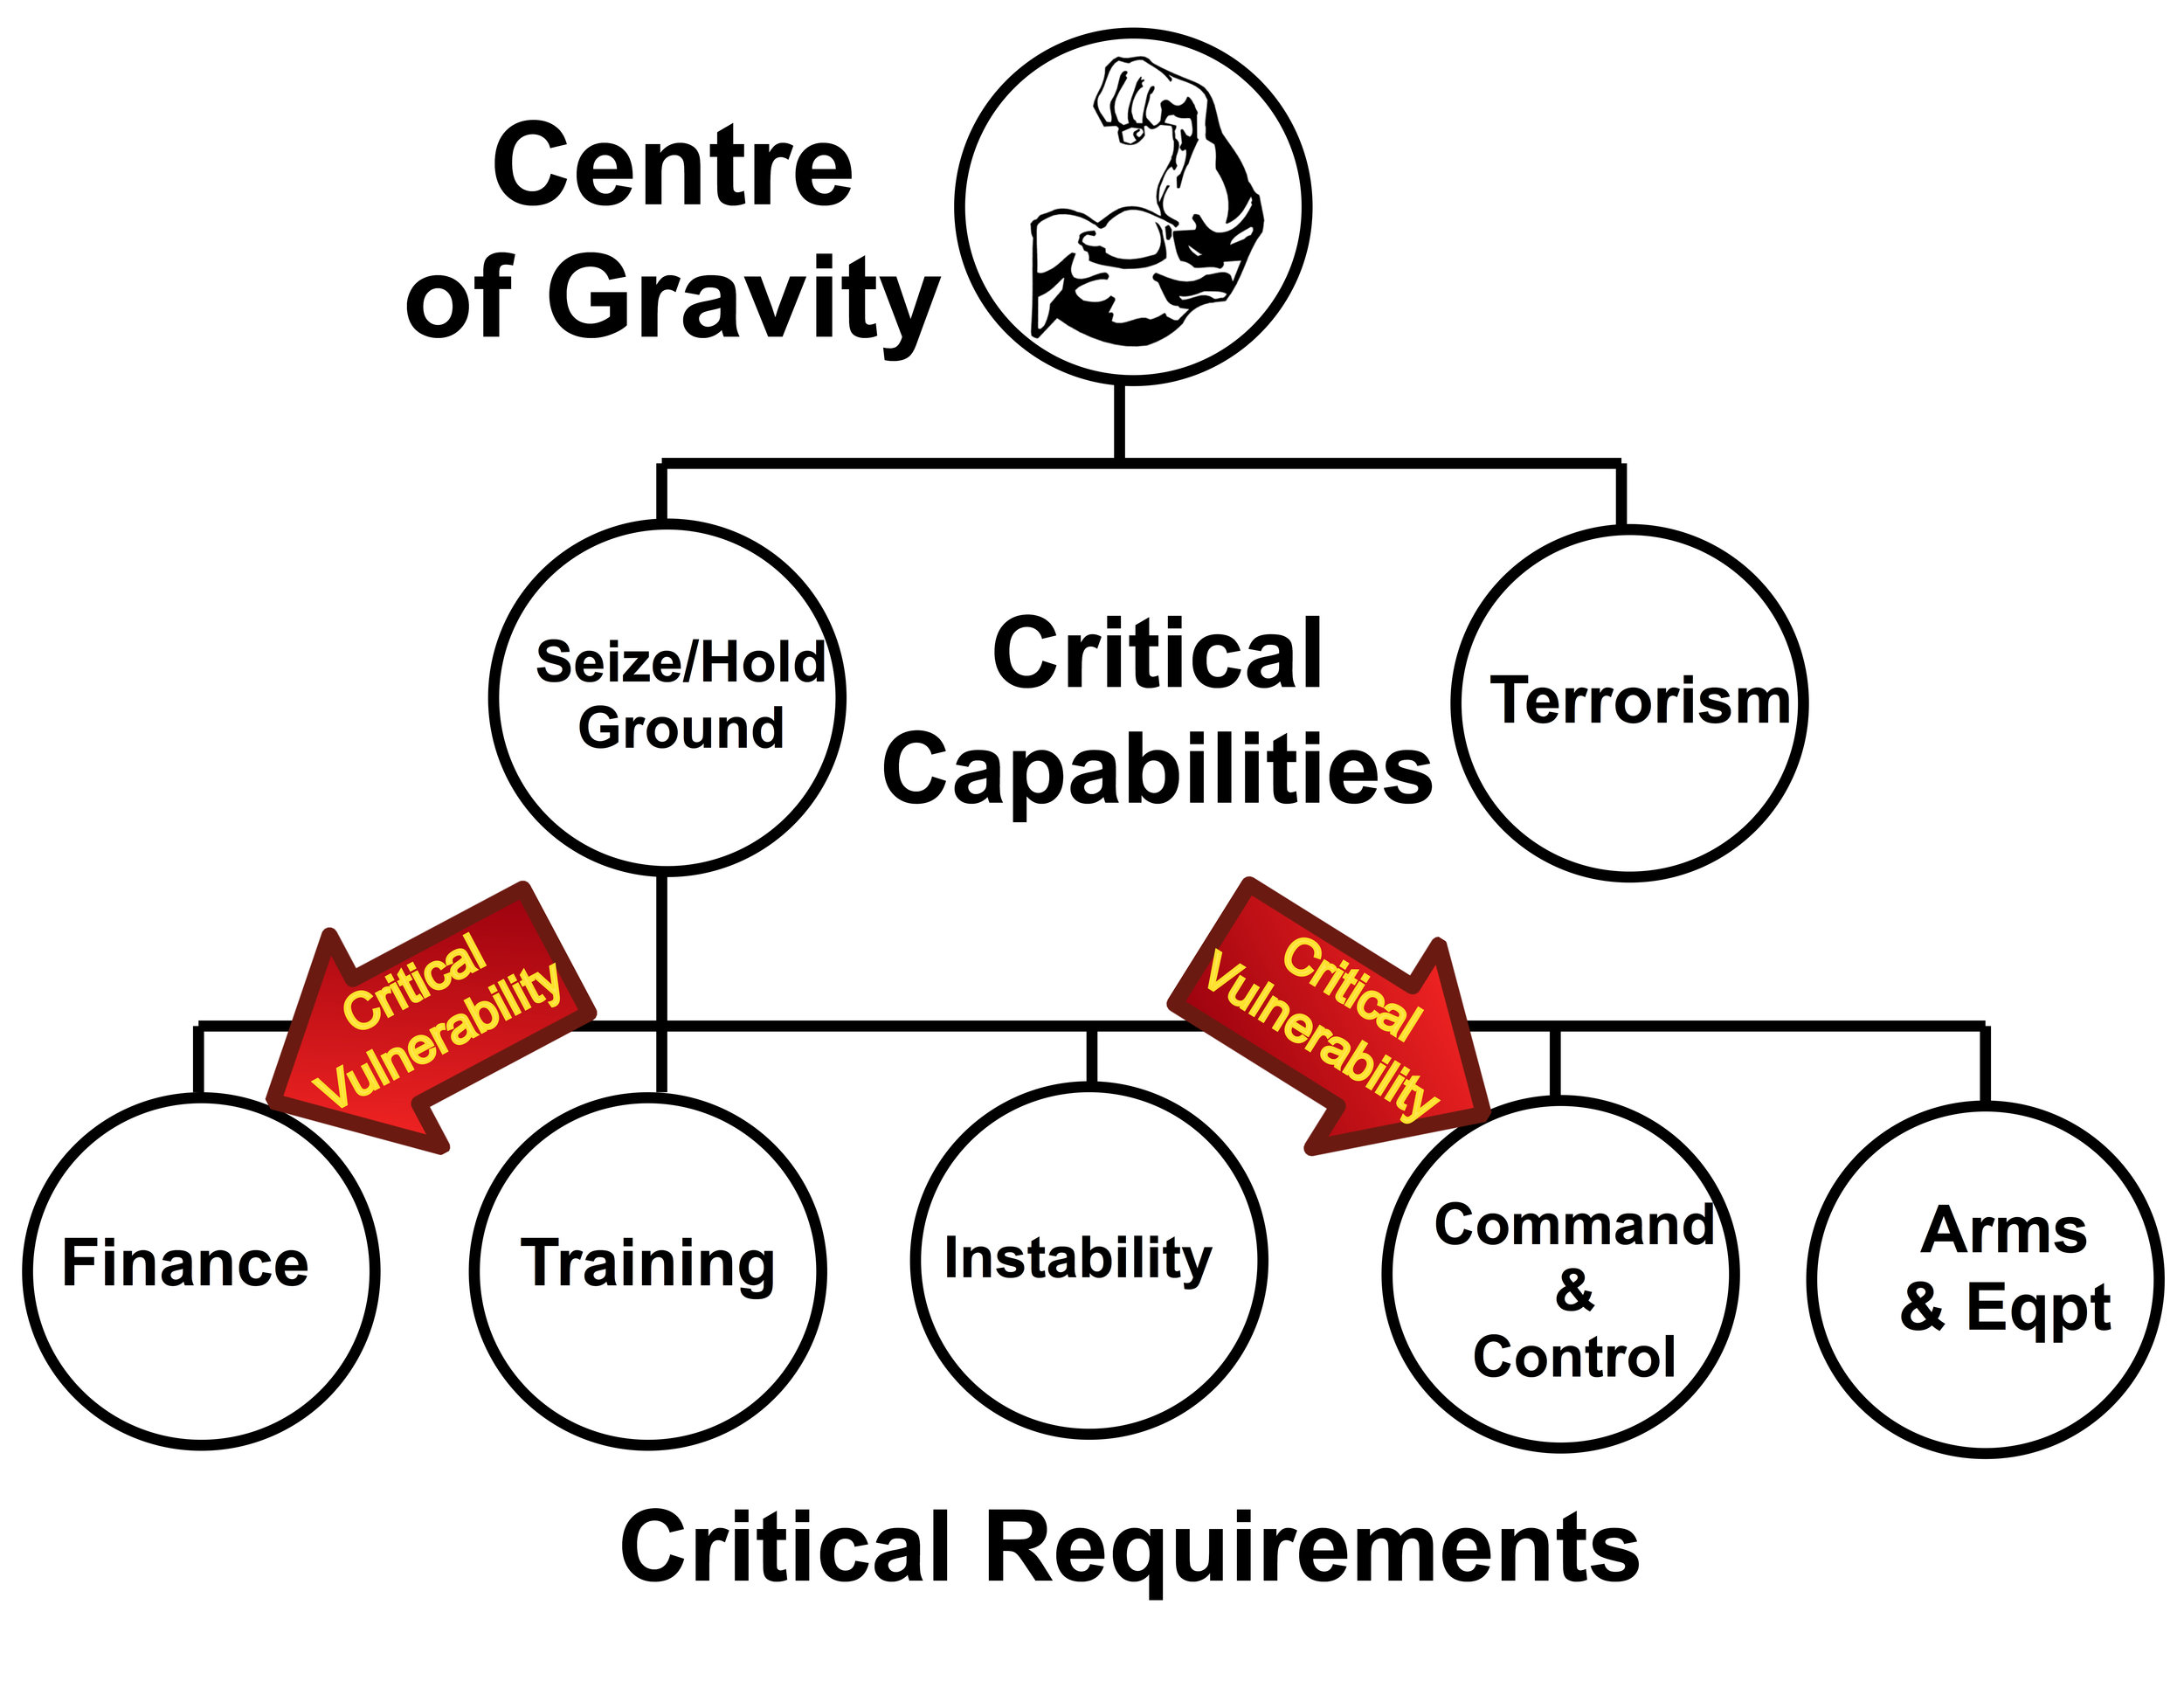 This graphic provides a general idea of how a Centre of Gravity (CofG) can be disrupted by concentrating combat power against Critical Vulnerabilities (CVs). (pat stogran)